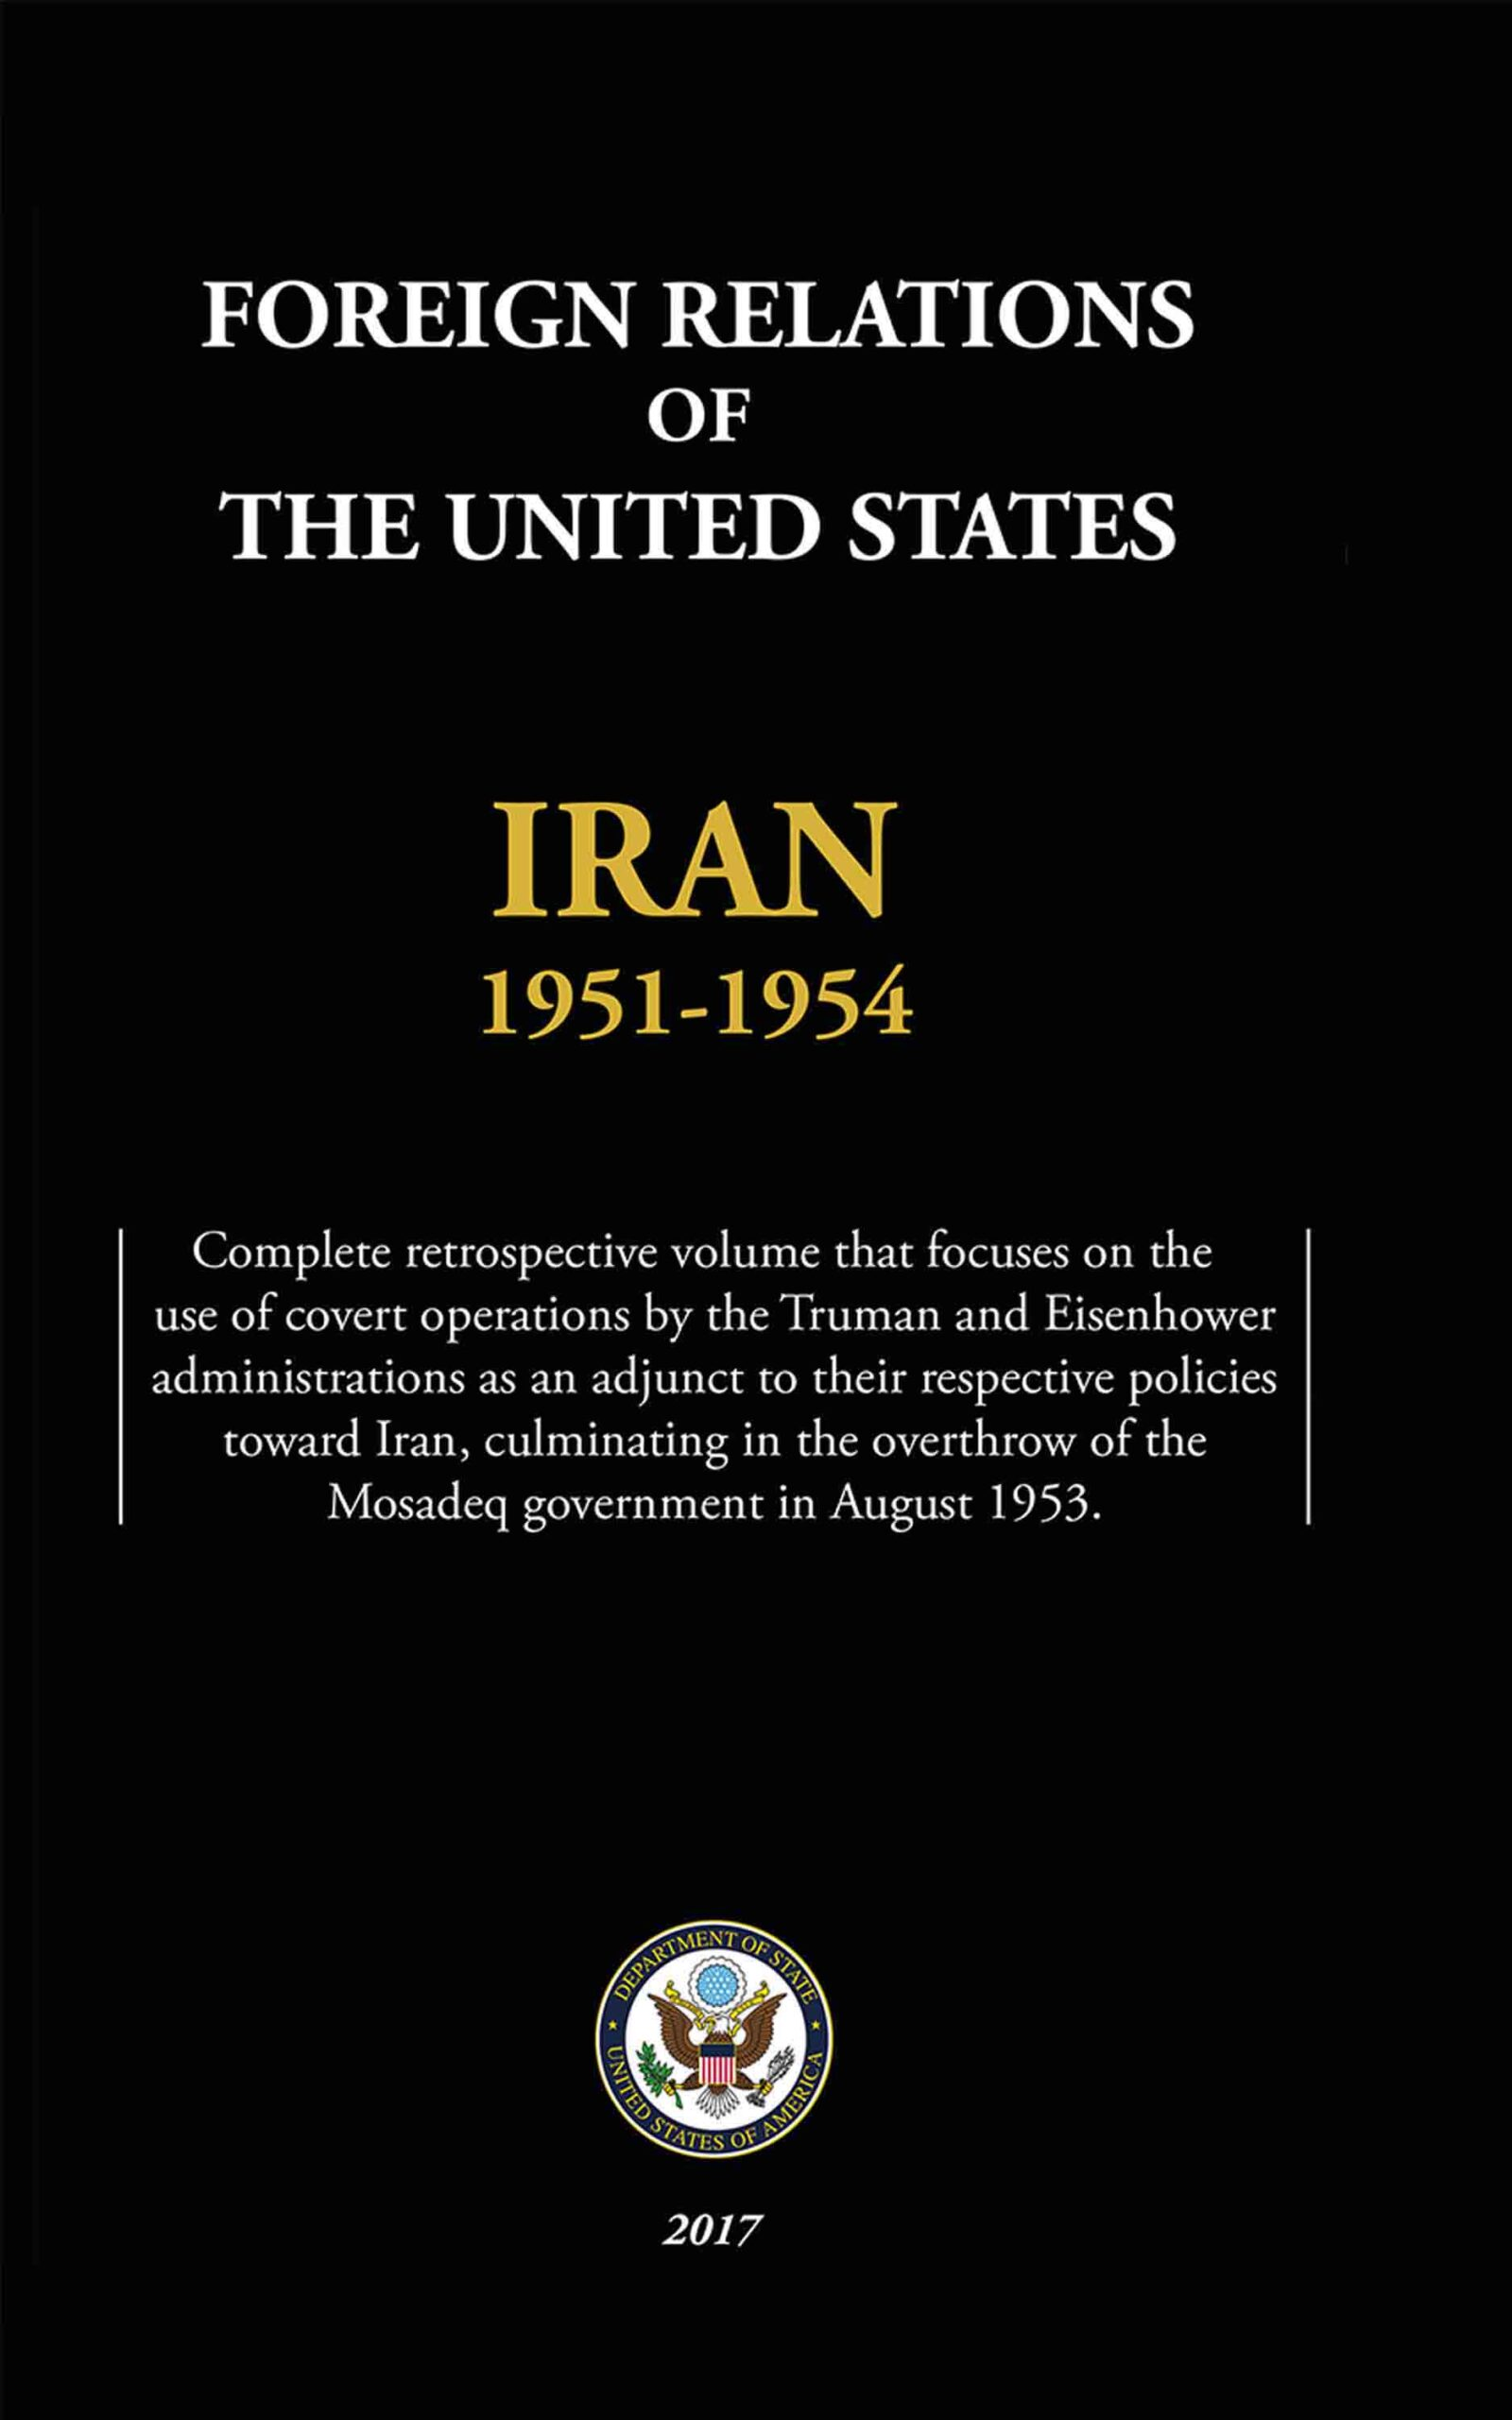 FOREIGN RELATIONS OF THE UNITED STATES – IRAN, 1951-1954